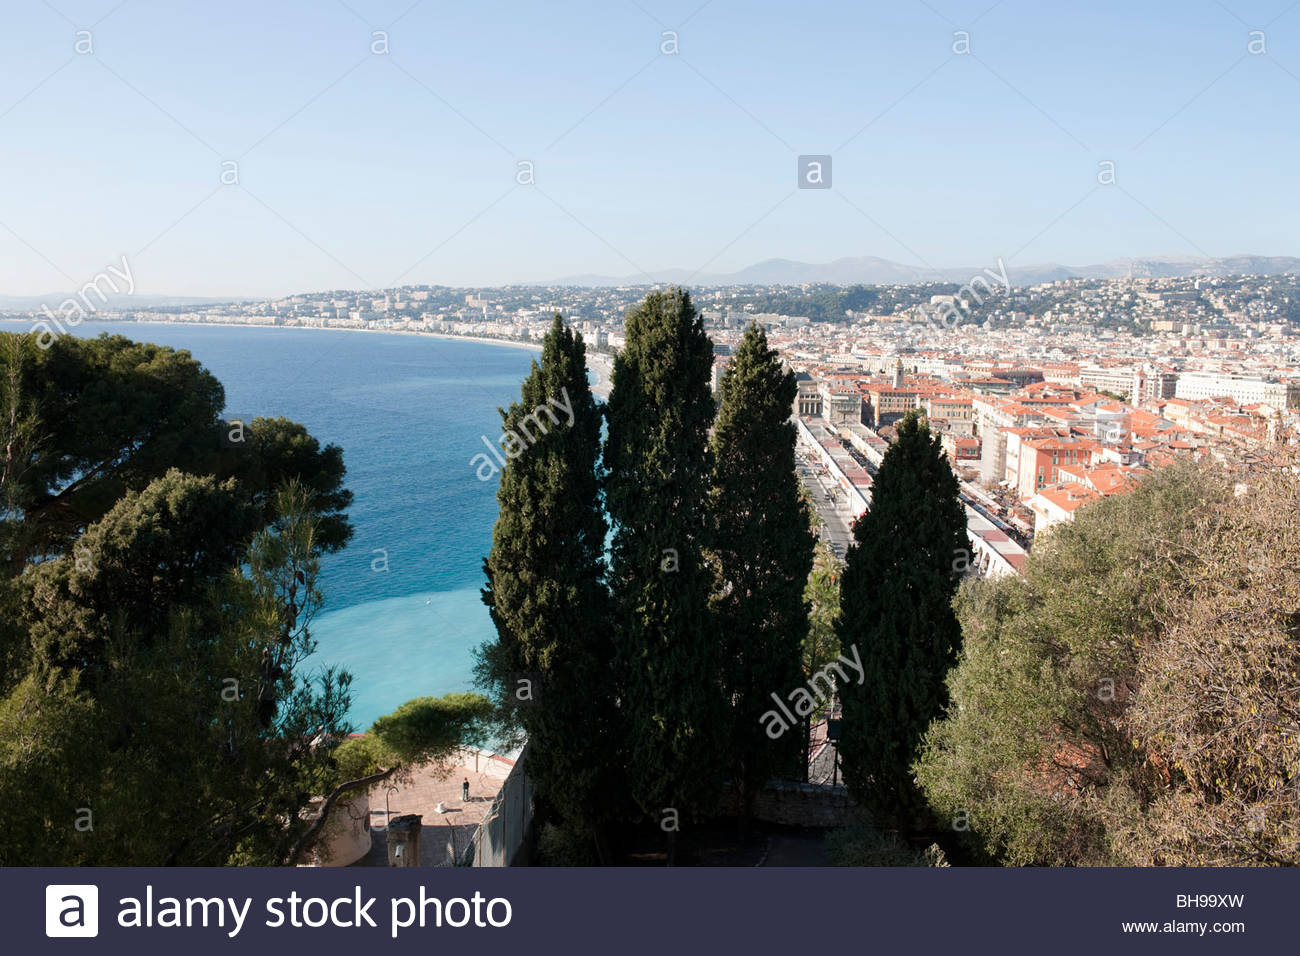 Cypress trees, The Marche aux Fleurs, Baie des Anges, Nice from the Parc de Colline du Chateau, sun blue sky - Stock Image